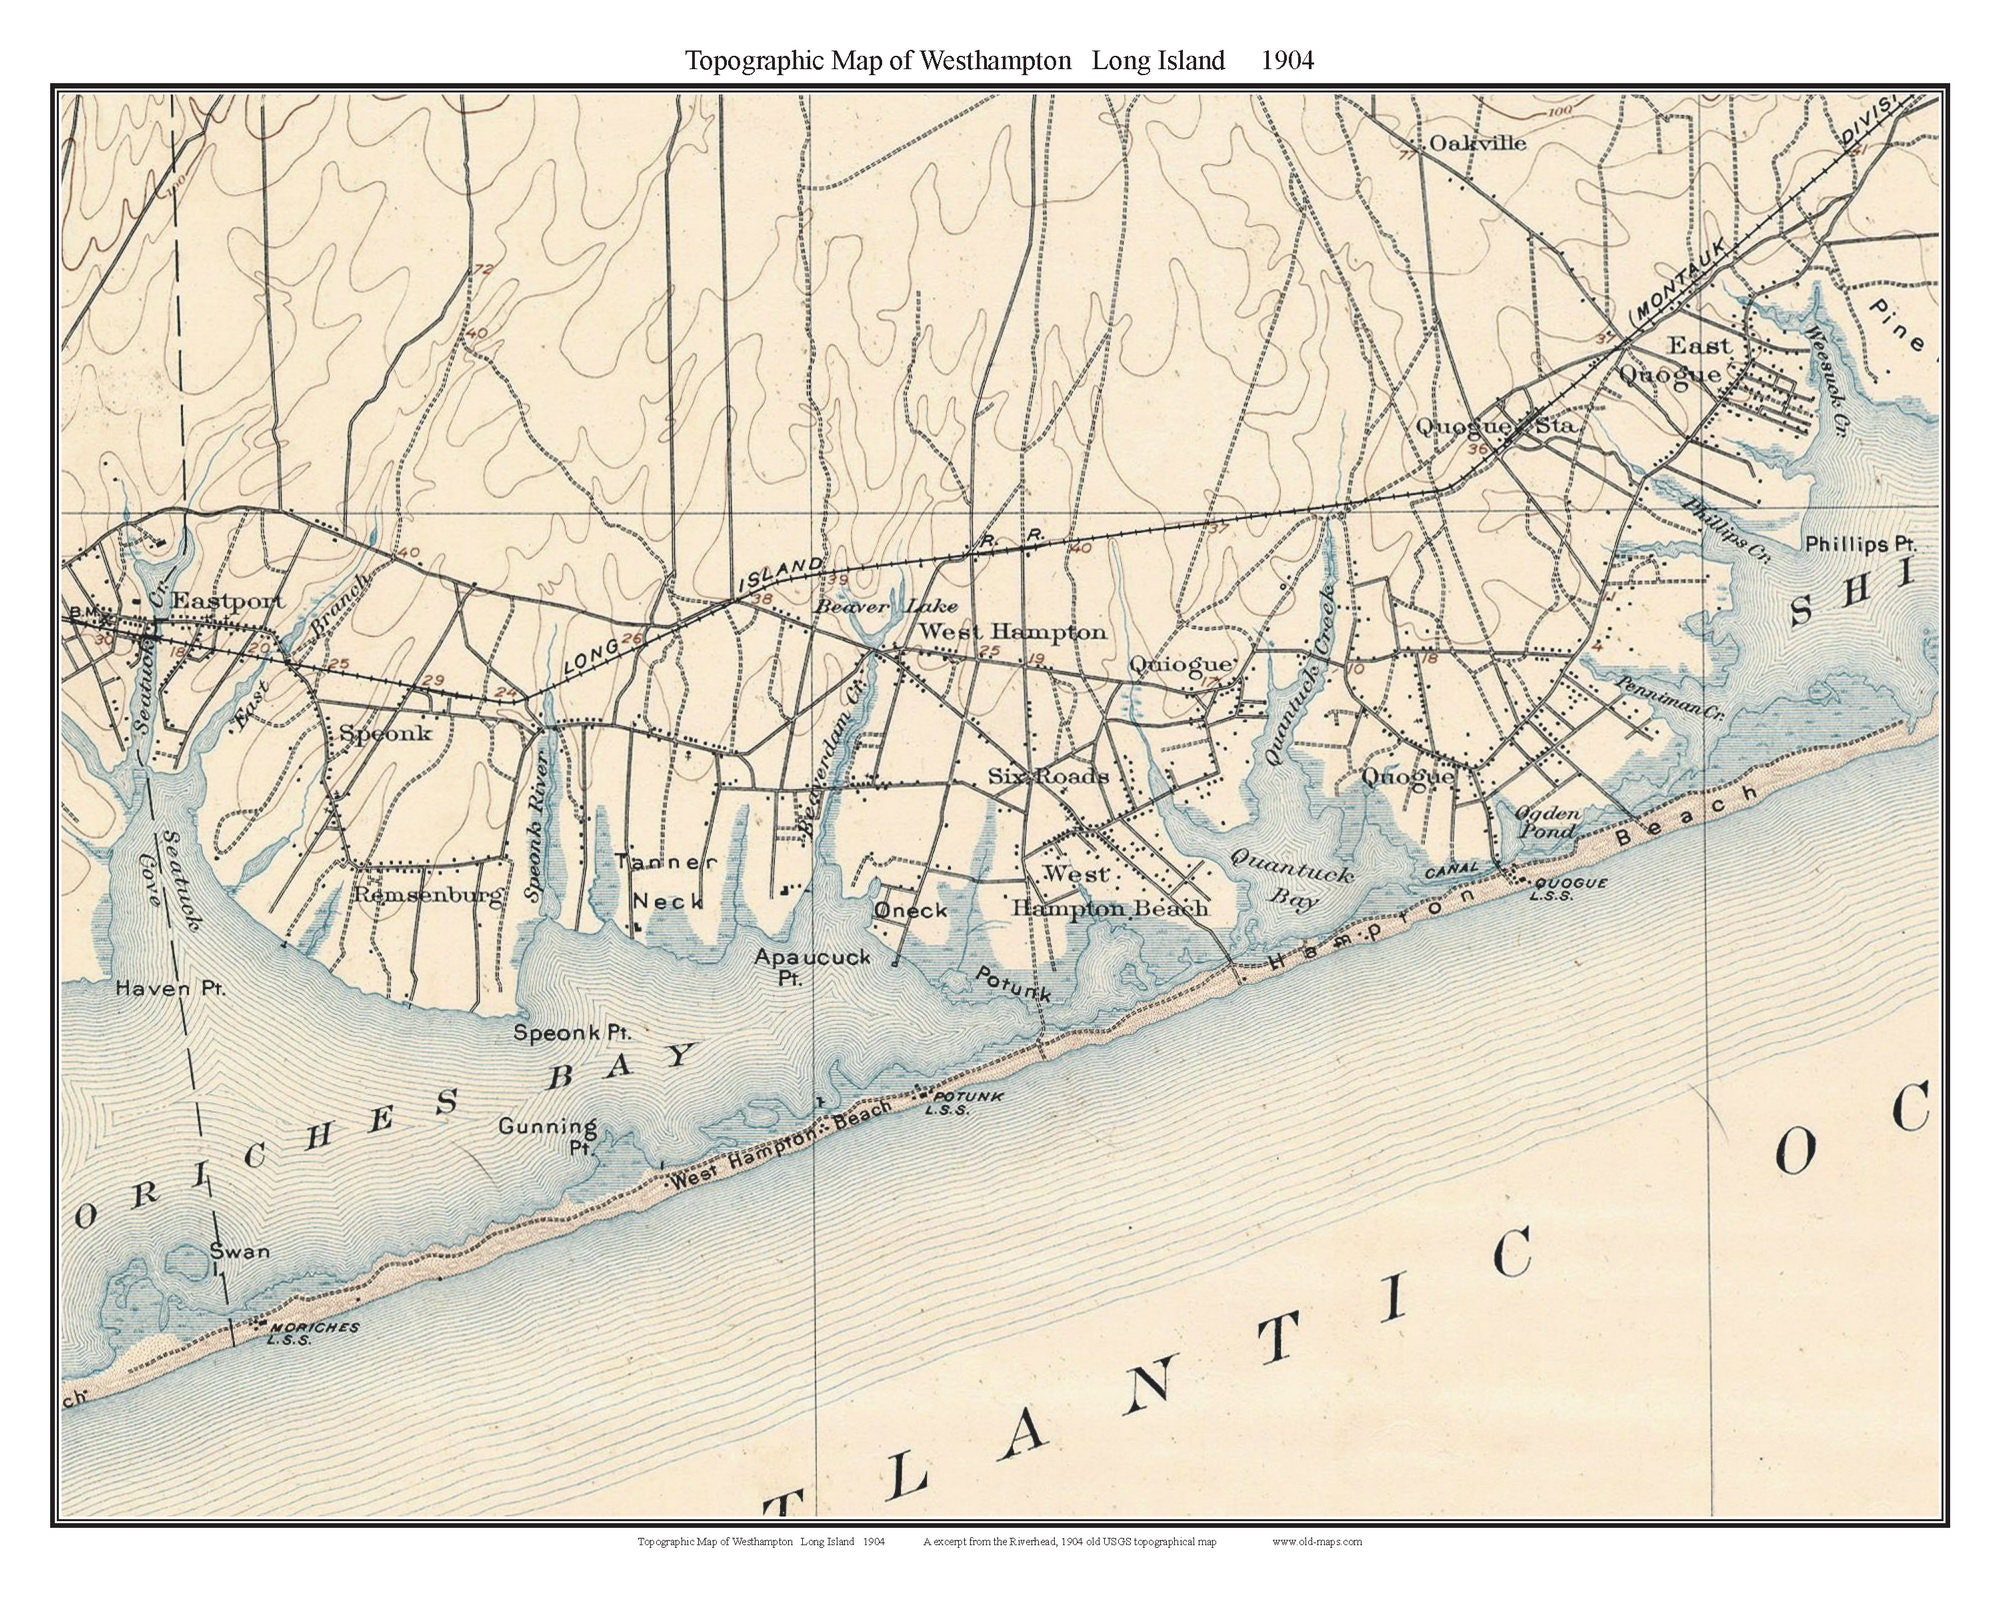 Topographic Map Long Island.Westhampton 1904 Long Island New York Old Usgs Topo Map Etsy